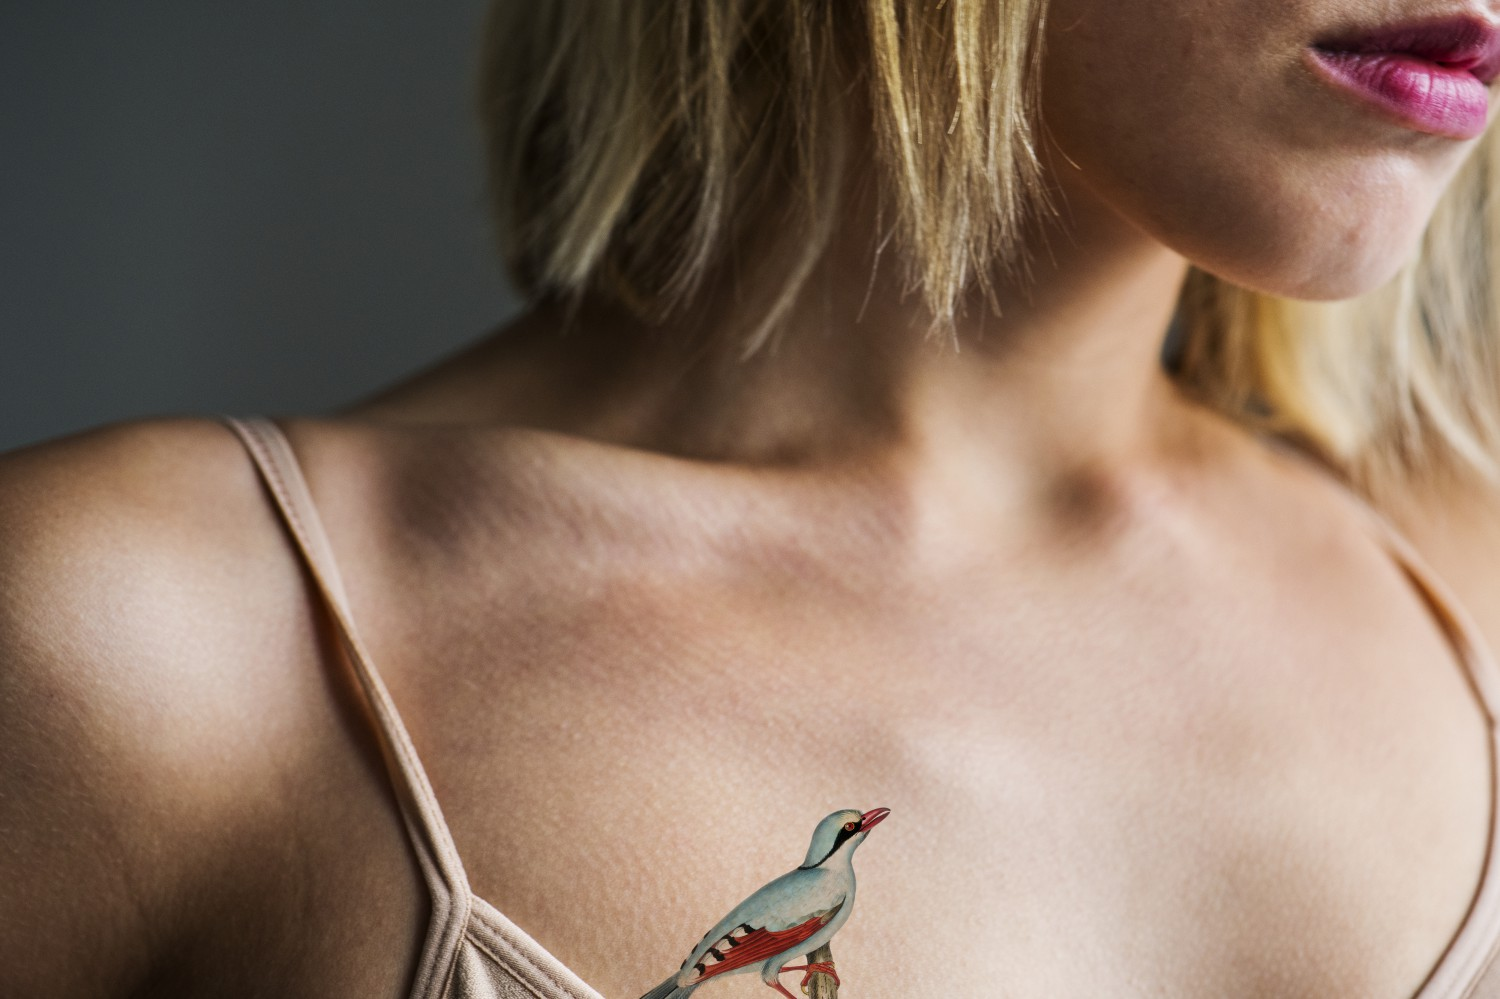 close up of tattoo on the chest of a woman pubdgn compressed